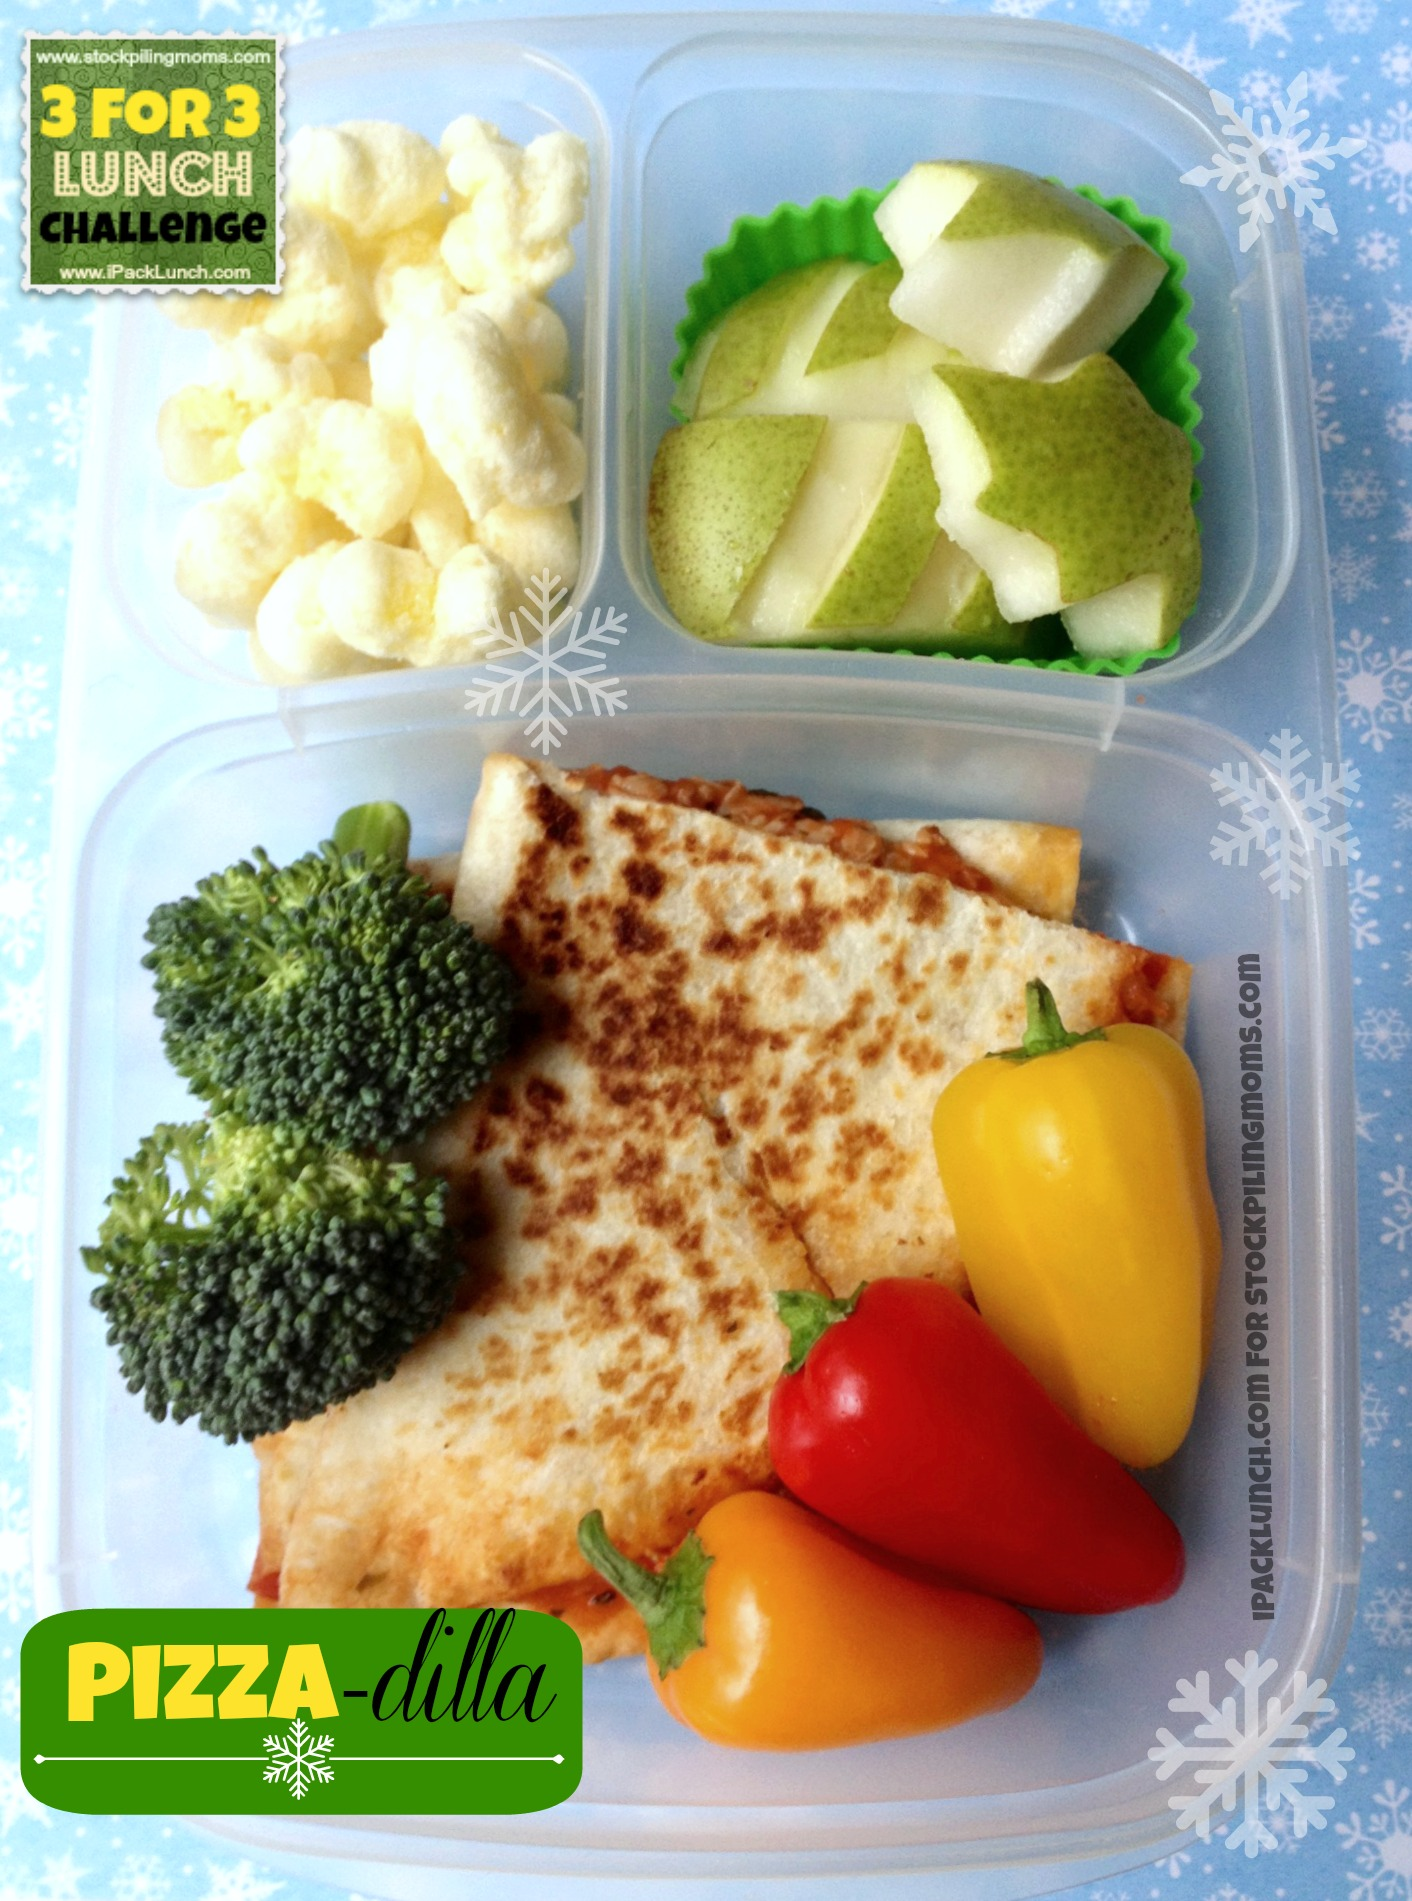 3 for 3 Lunch Challenge featuring pepperoni, broccoli and pears